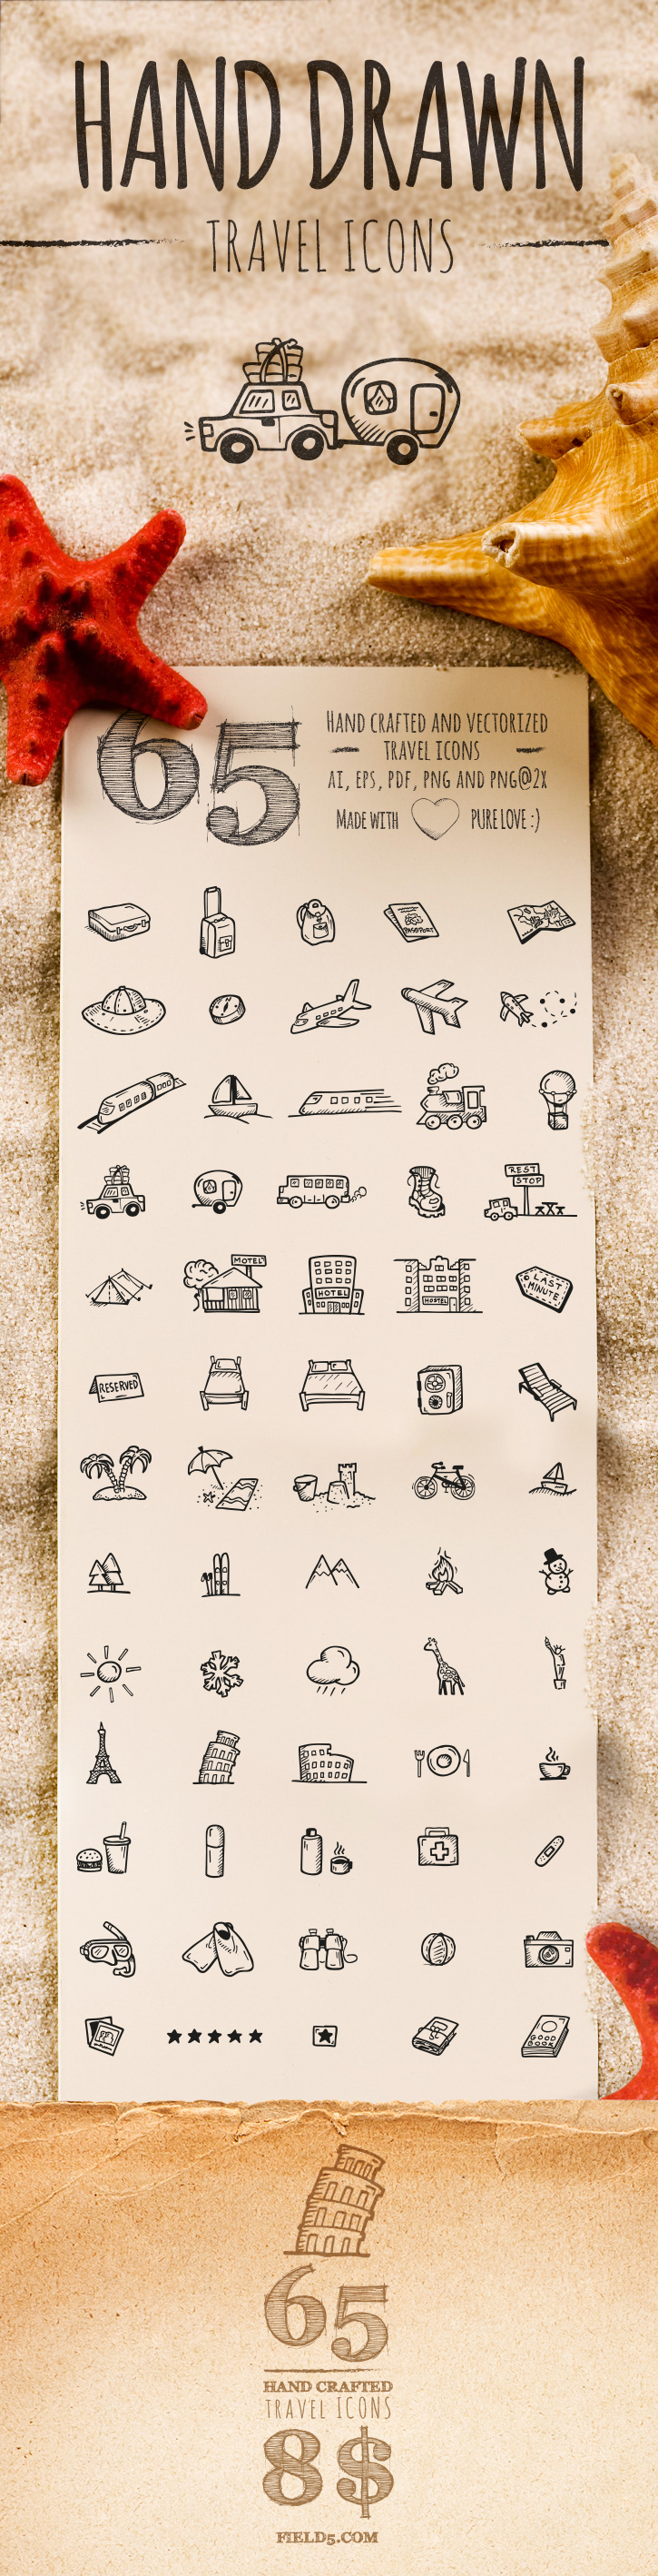 Hand Drawn Travel Icons